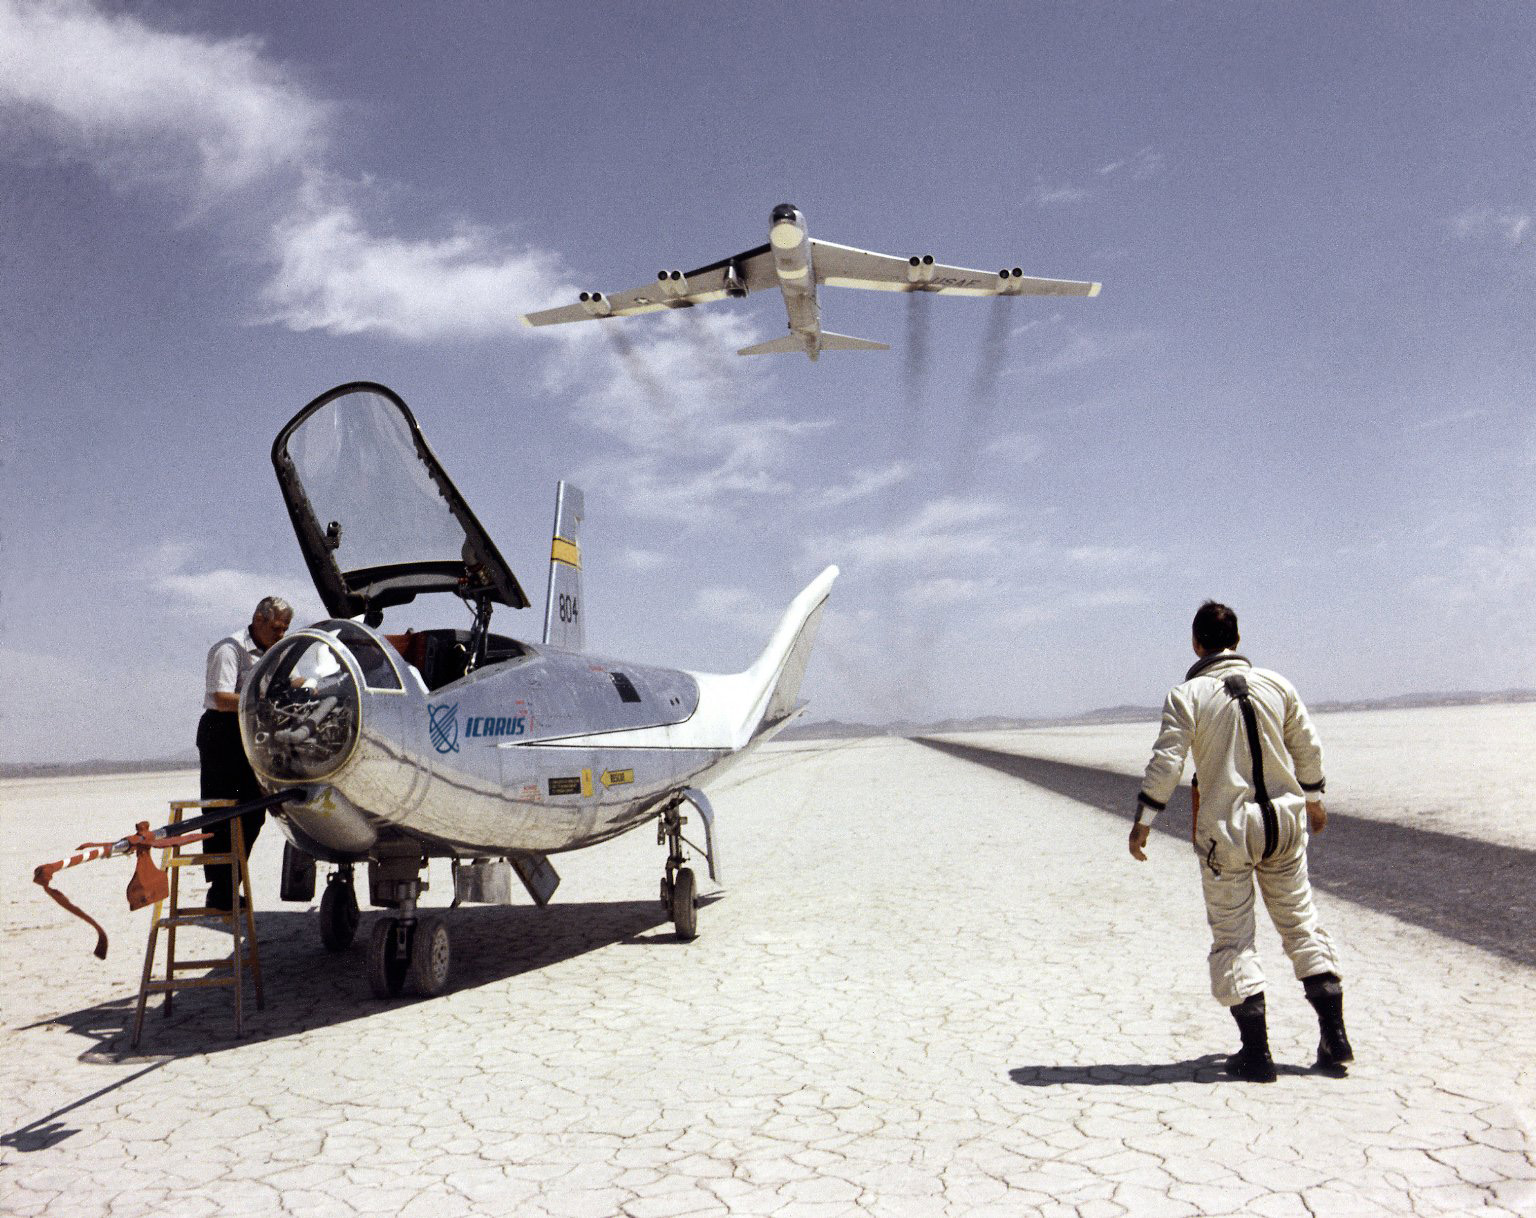 Icarus HL-10 on Lakebed with B-52 flyby.jpg